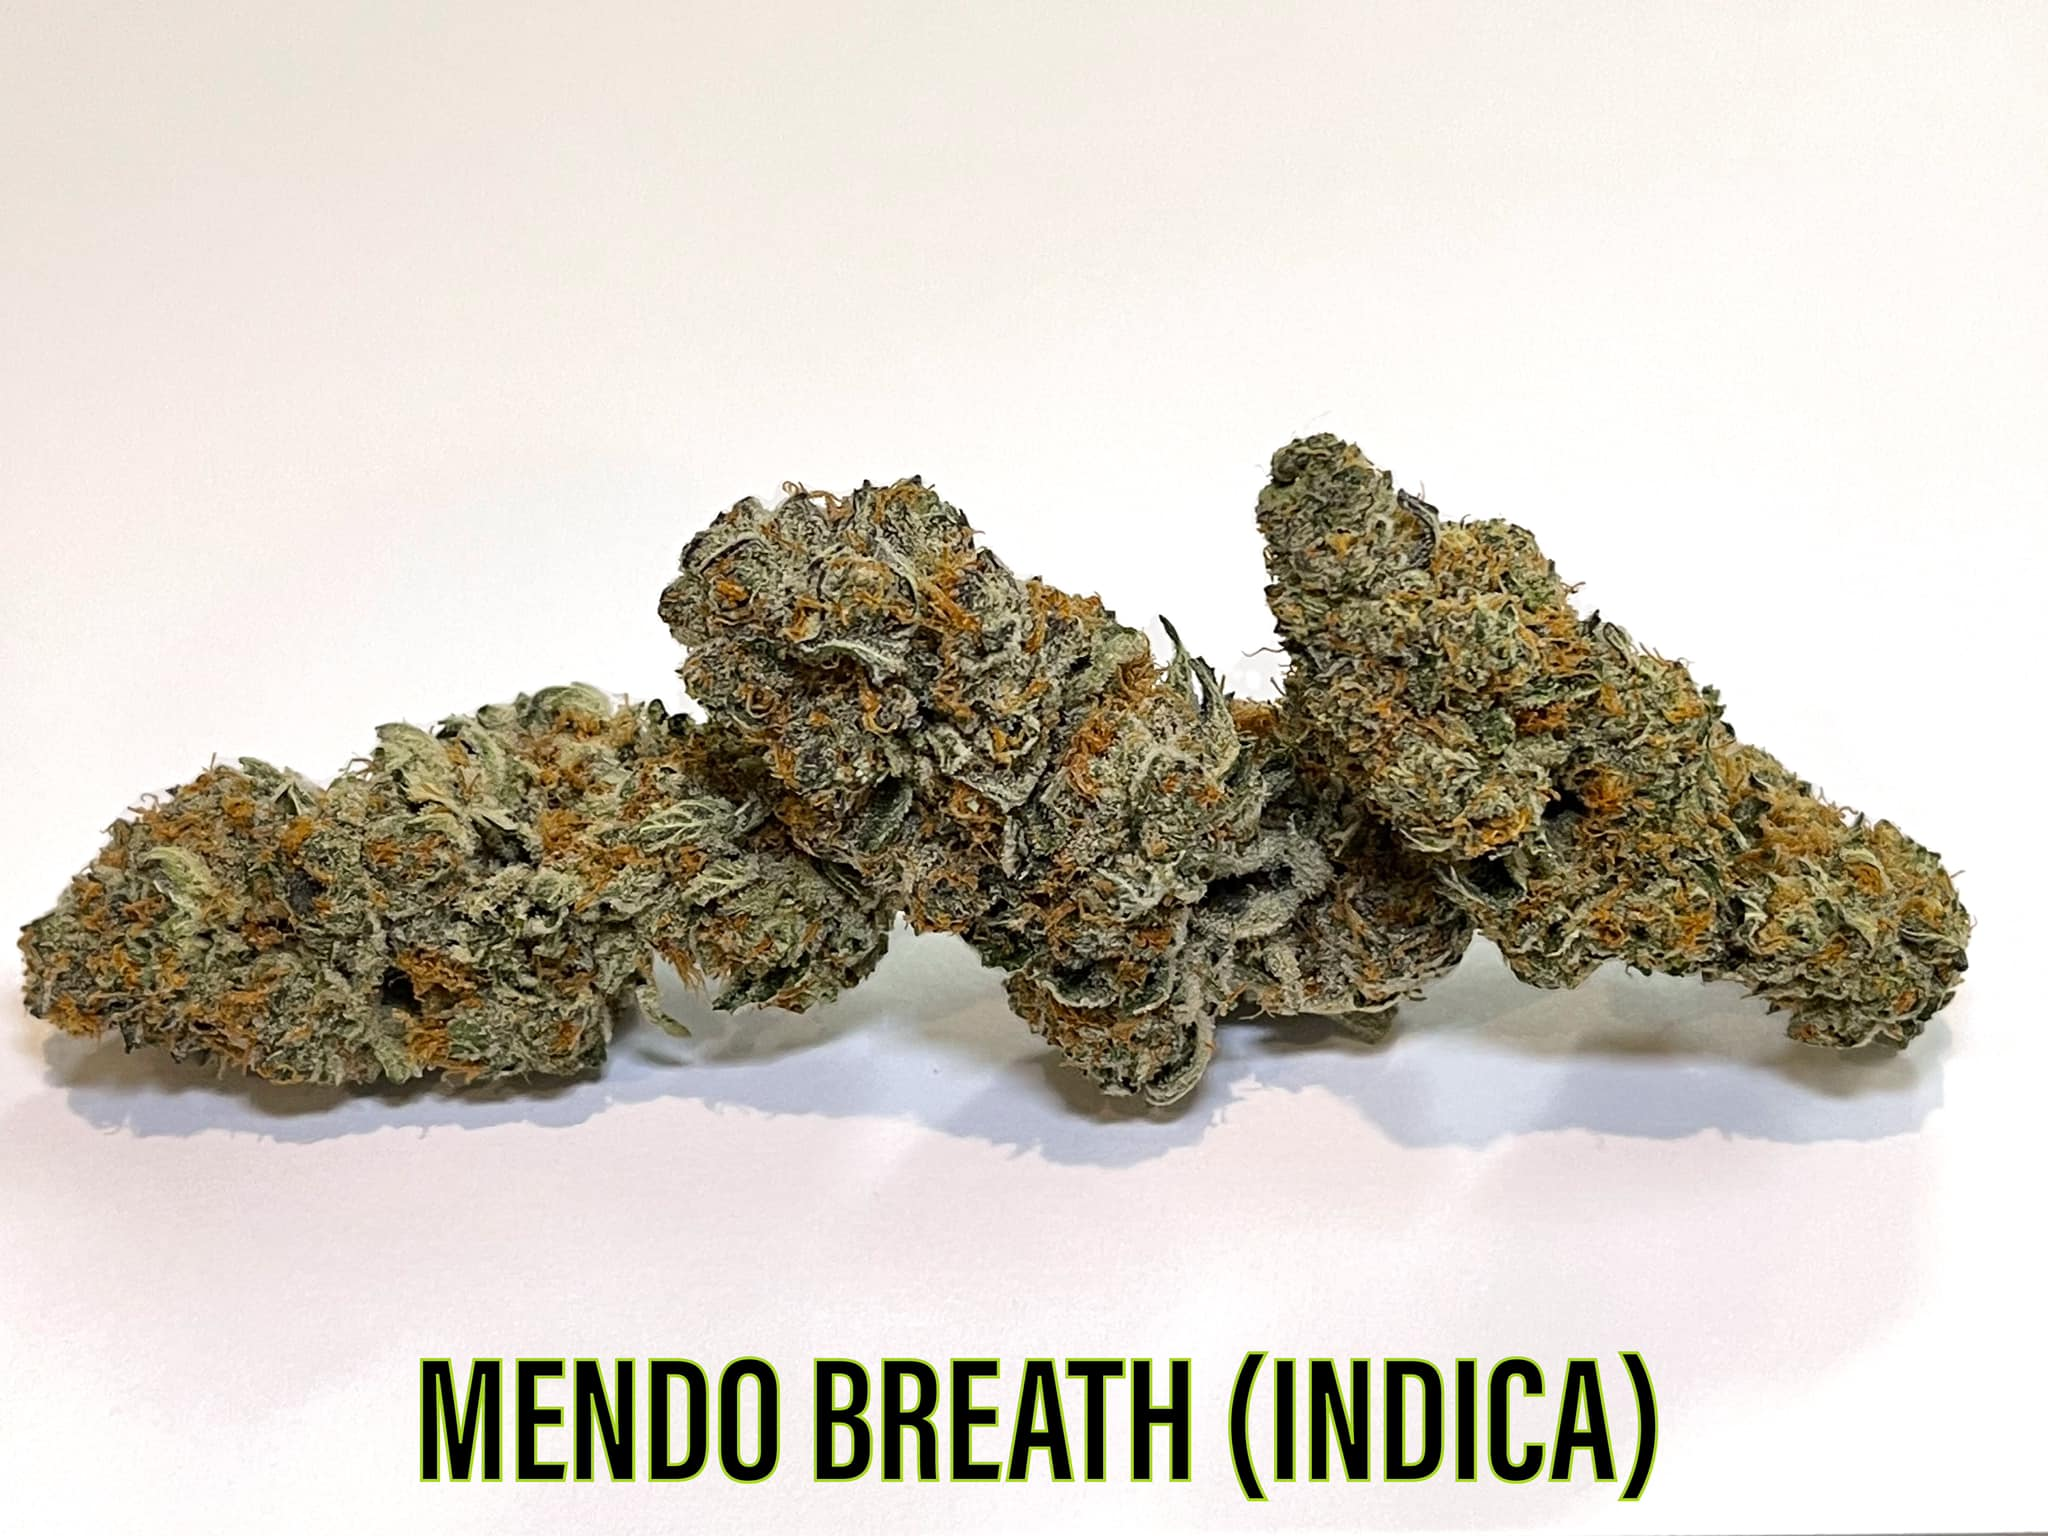 cured buds of indica mendo breath